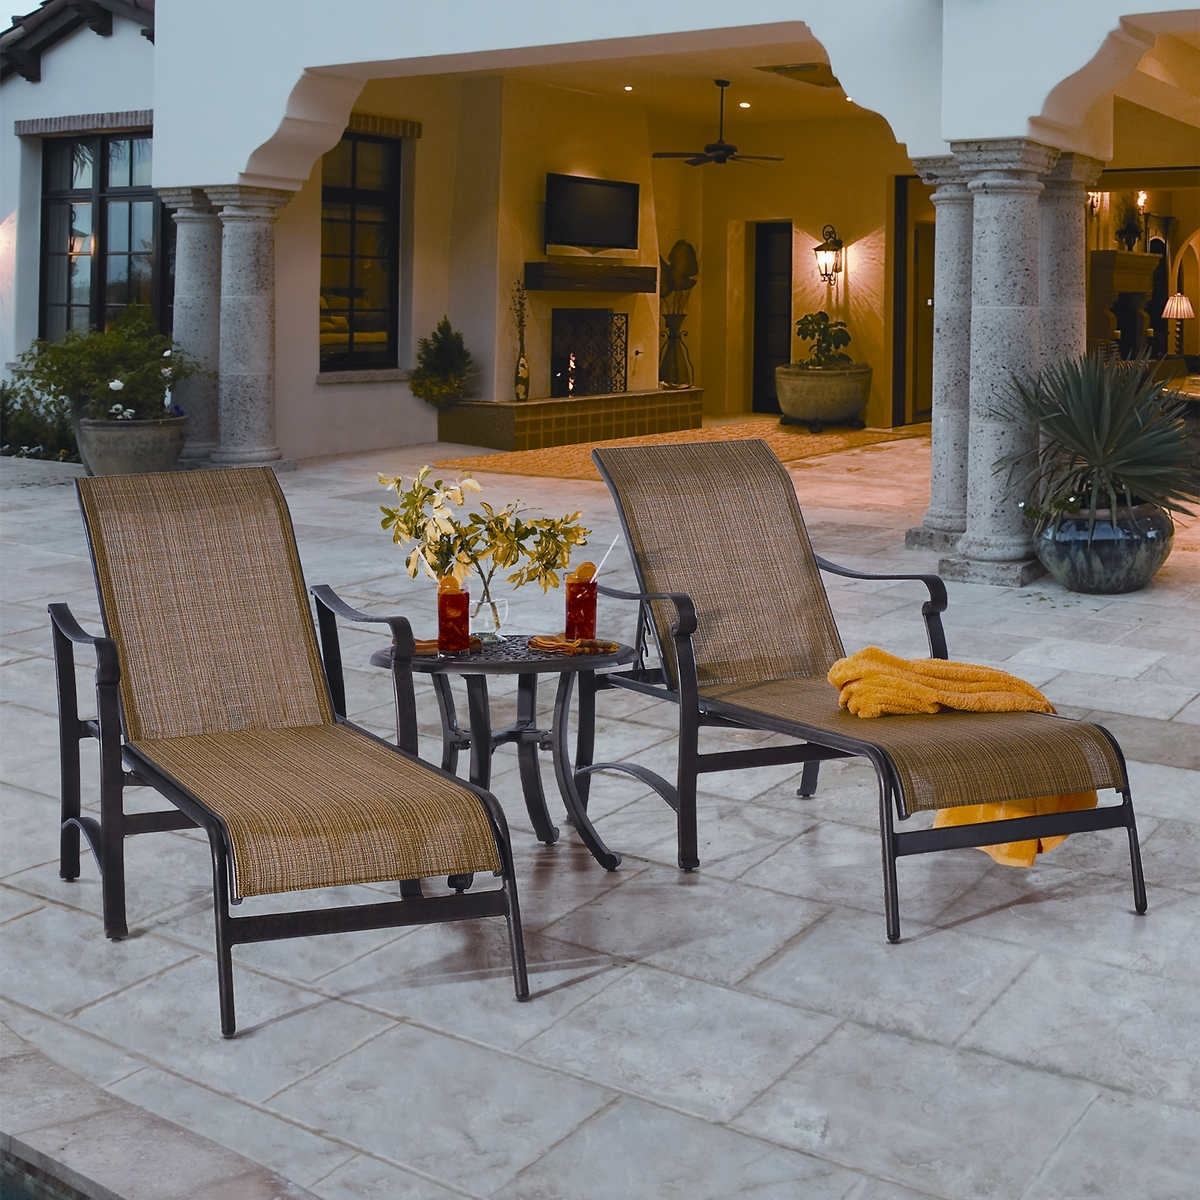 Widely Used Chaise Lounge Chairs At Costco Regarding Home Design : Dazzling Costco Pool Chairs Chaise Lounges Lounge (View 4 of 15)